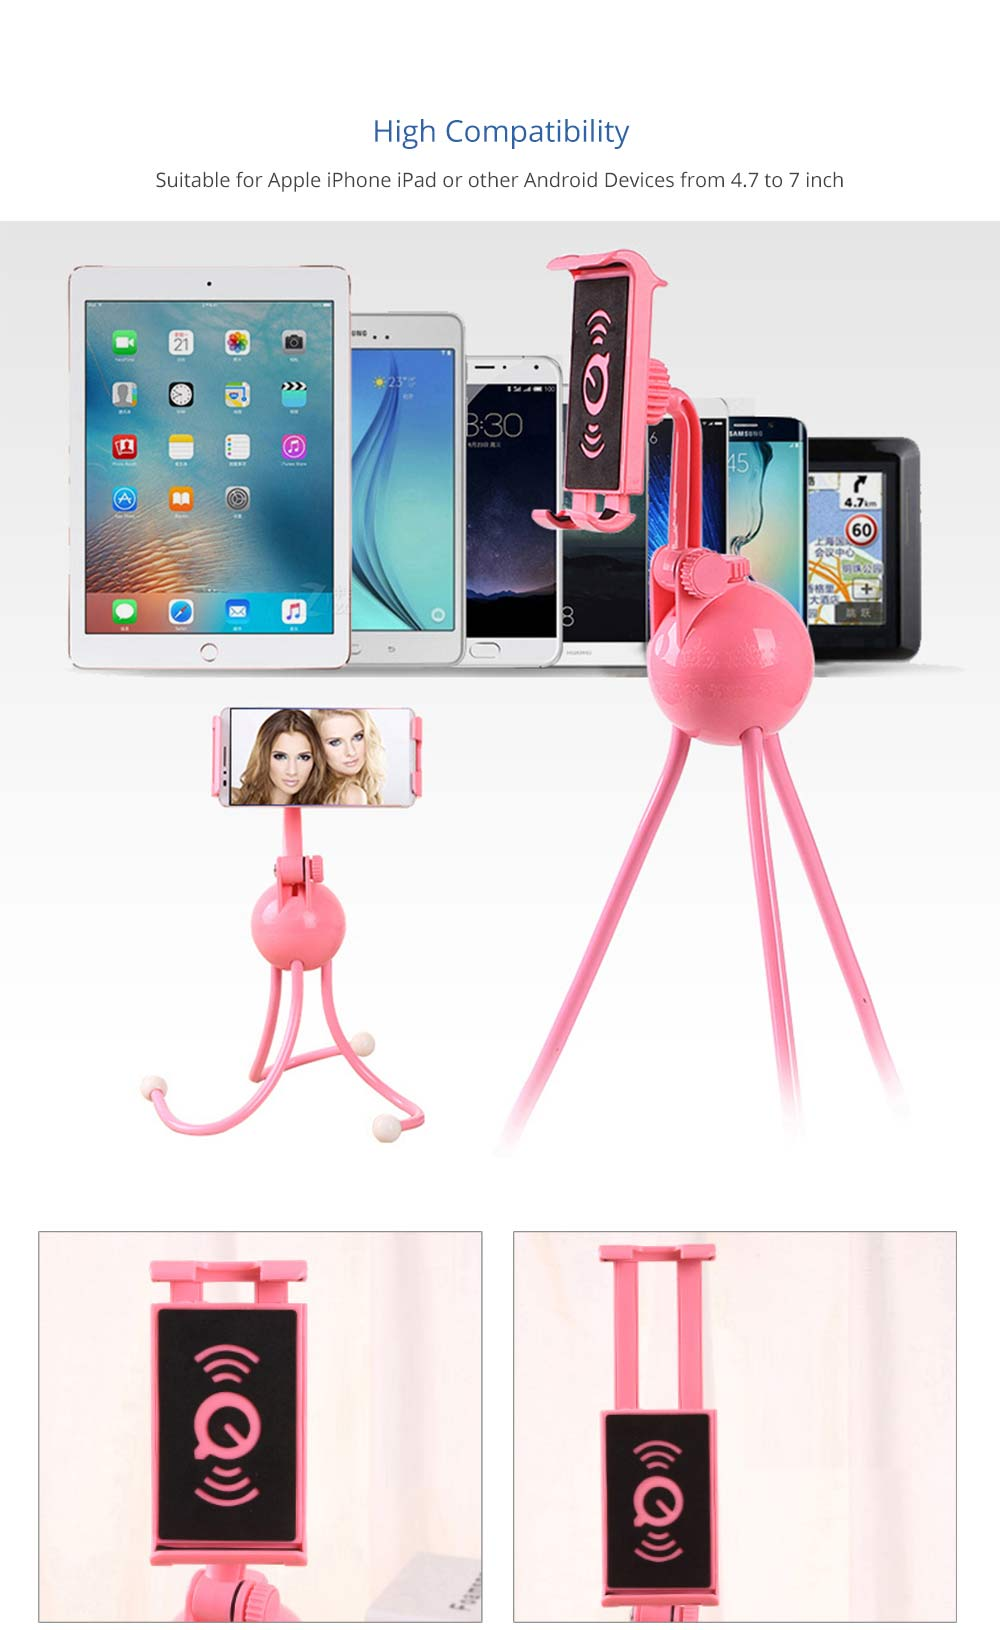 Extendable Hand-free Phone Octopus Stand Compatible with iPhone 6/6s, iPhone 7/7plus, iPhone 8/8plus, iPhone X/XS/Max, Samsung 4.7-7 inch, Adjustable Universal Holder 7